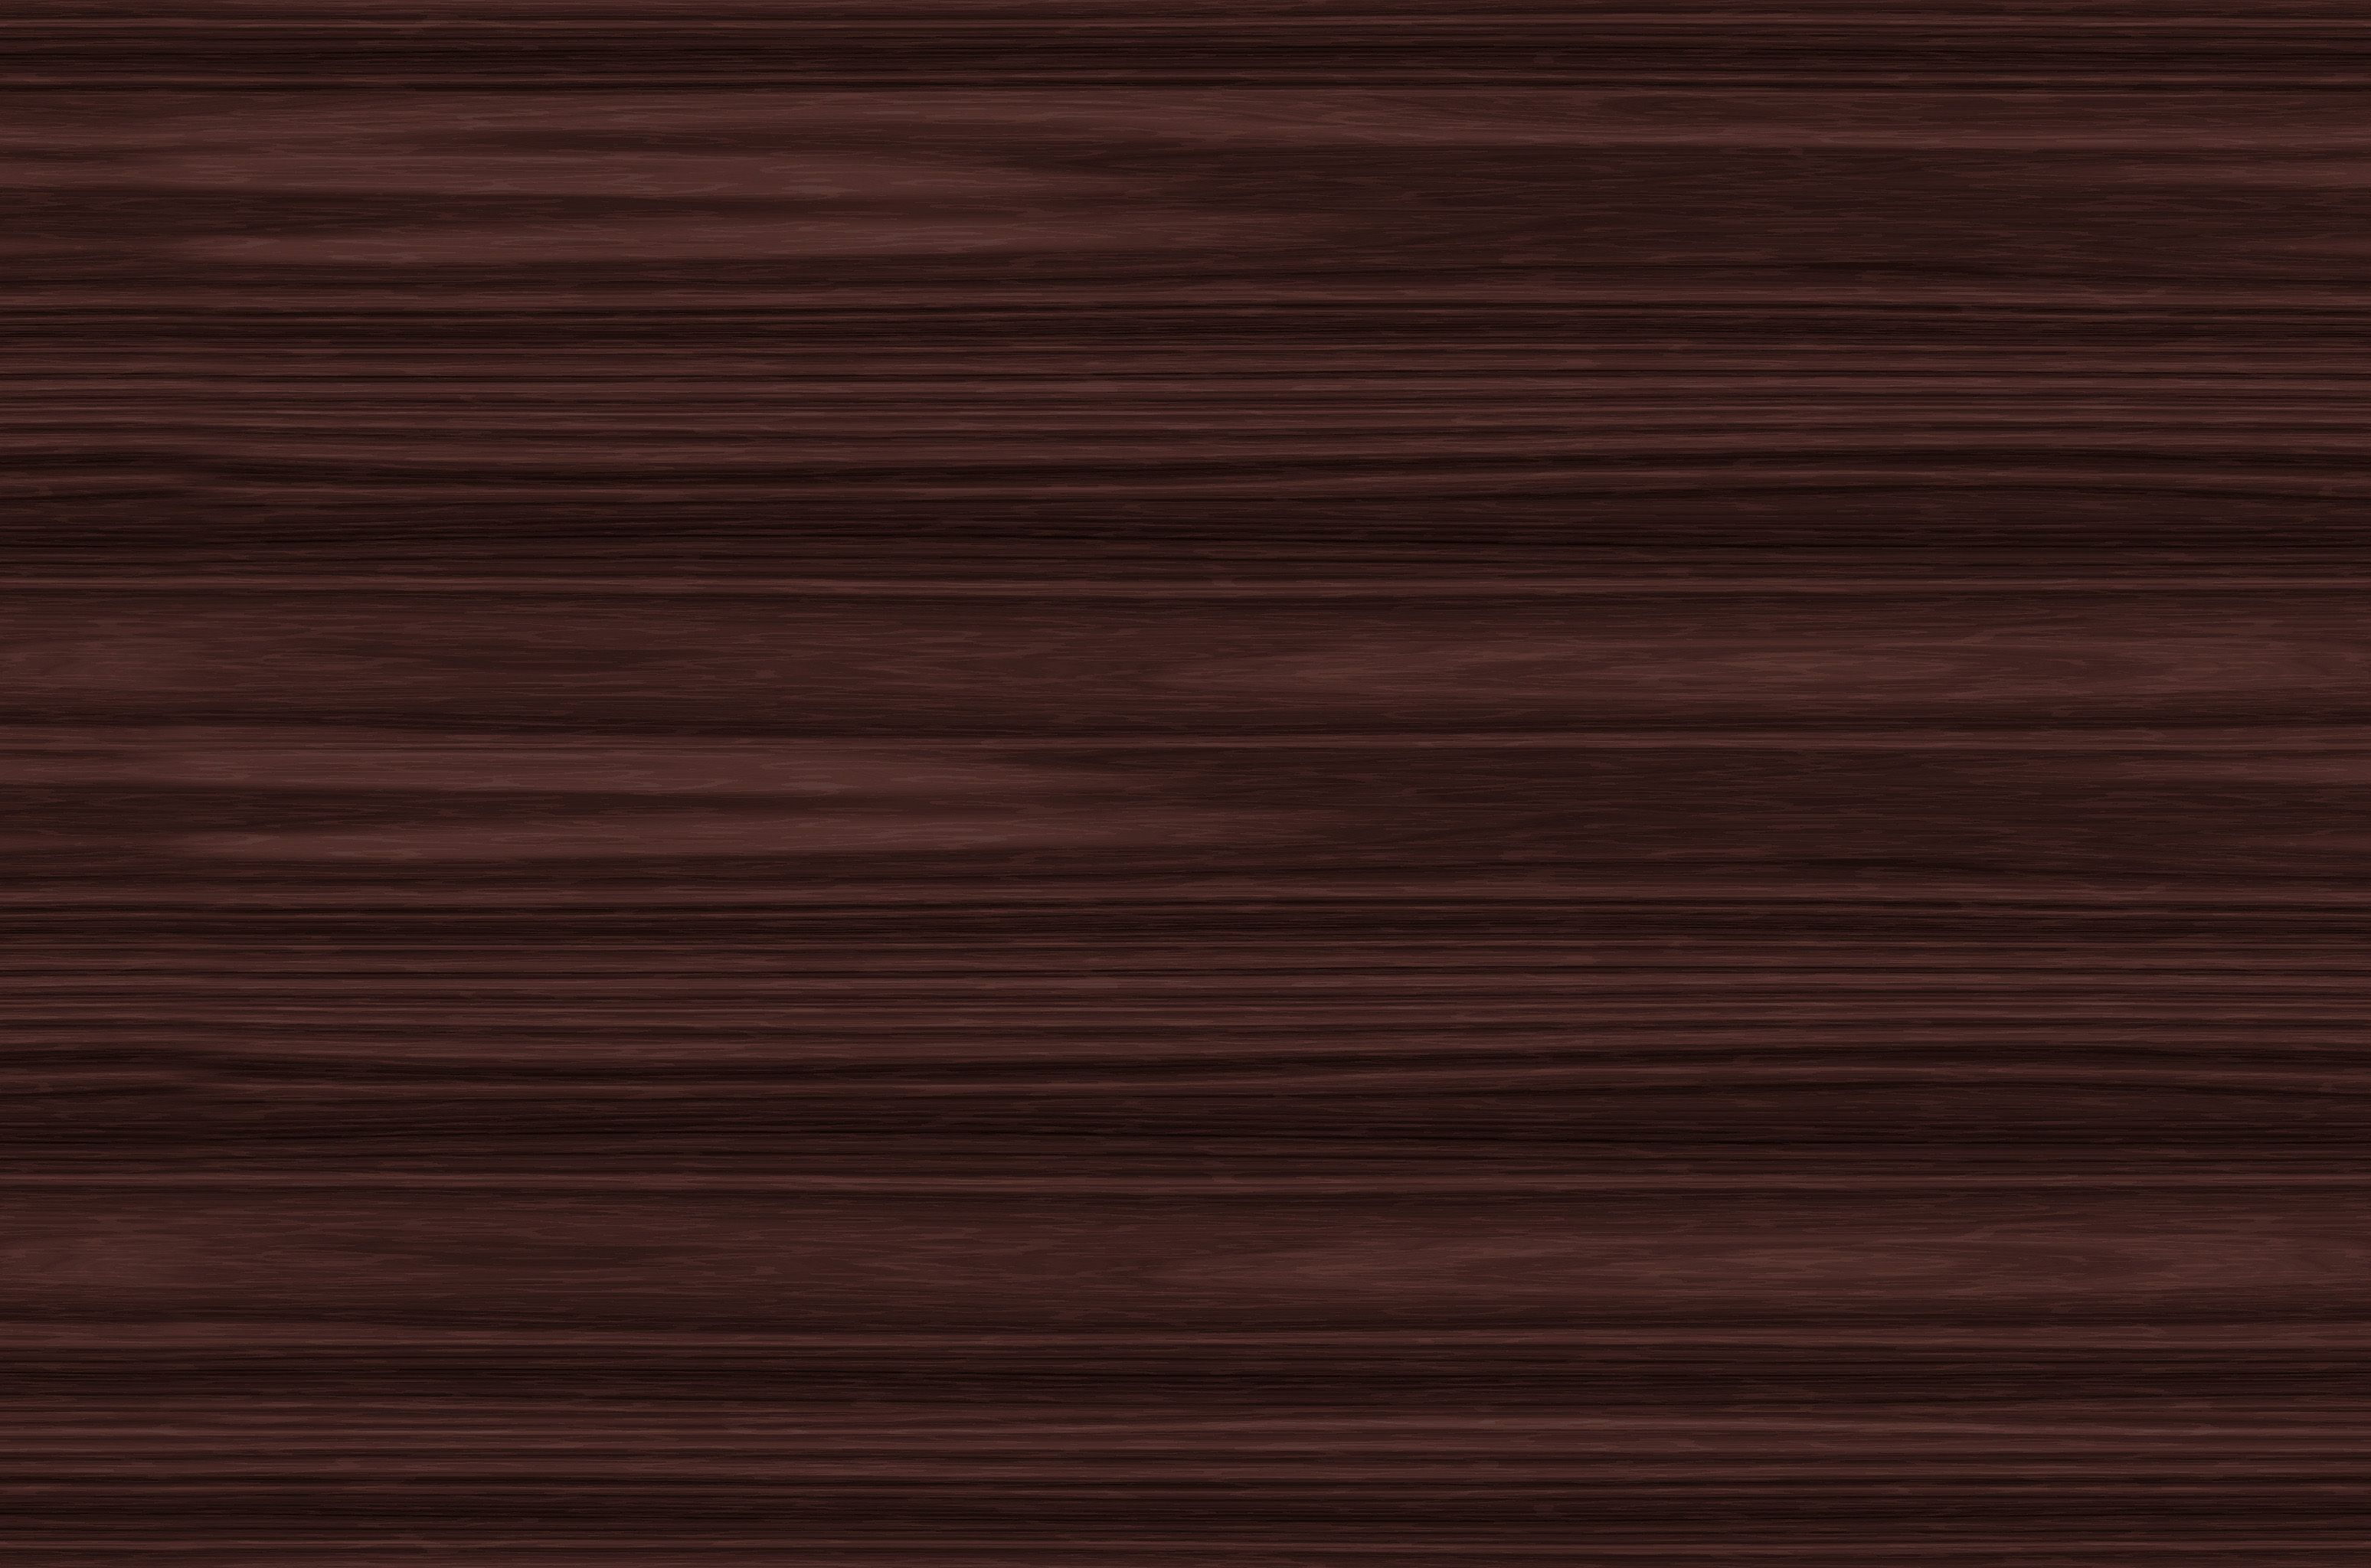 seamless dark wood texturedark dark textures free download wooden texture lih1bi9l s83 wood